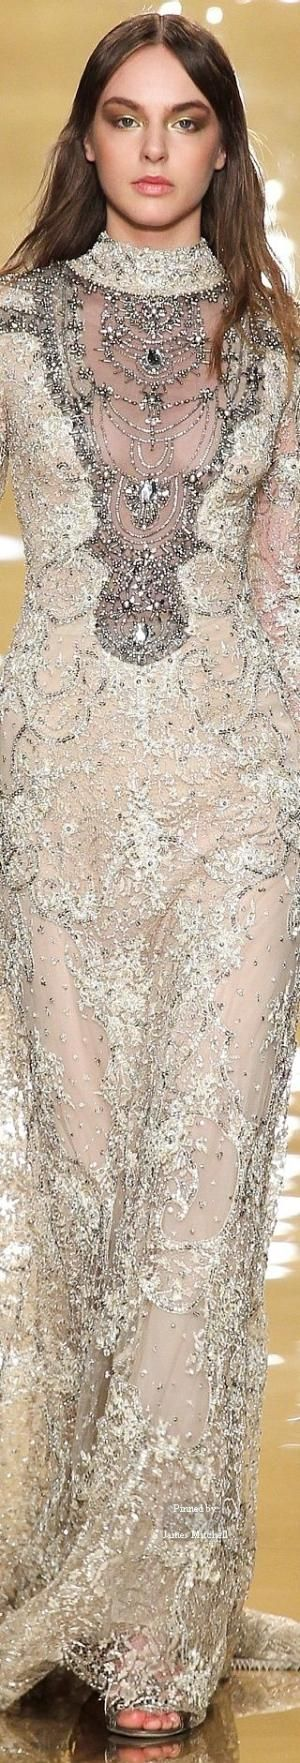 Reem Acra Collections Fall Winter 2015-16 collection by bobbi